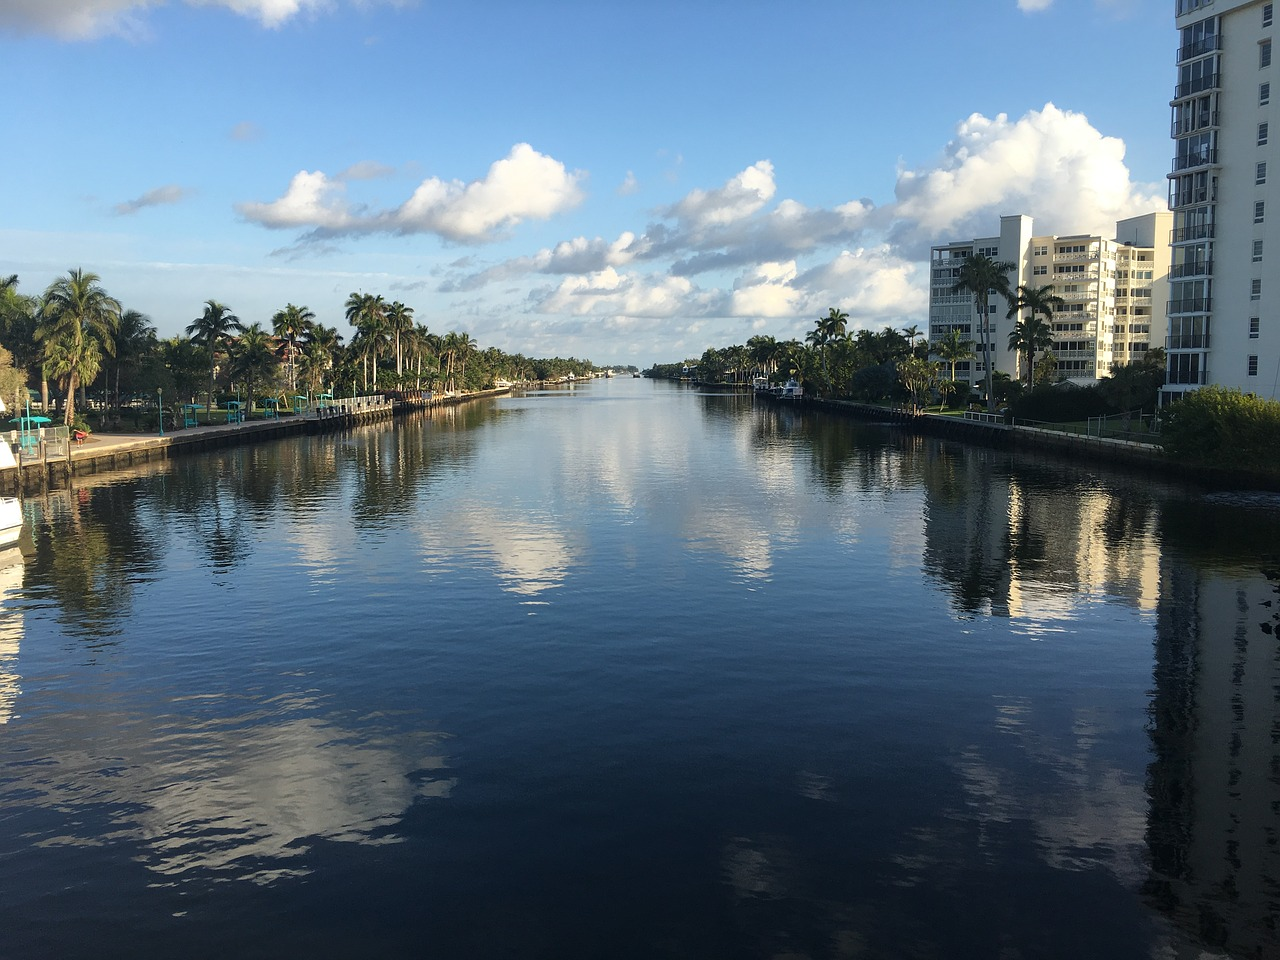 A view of Delray Beach